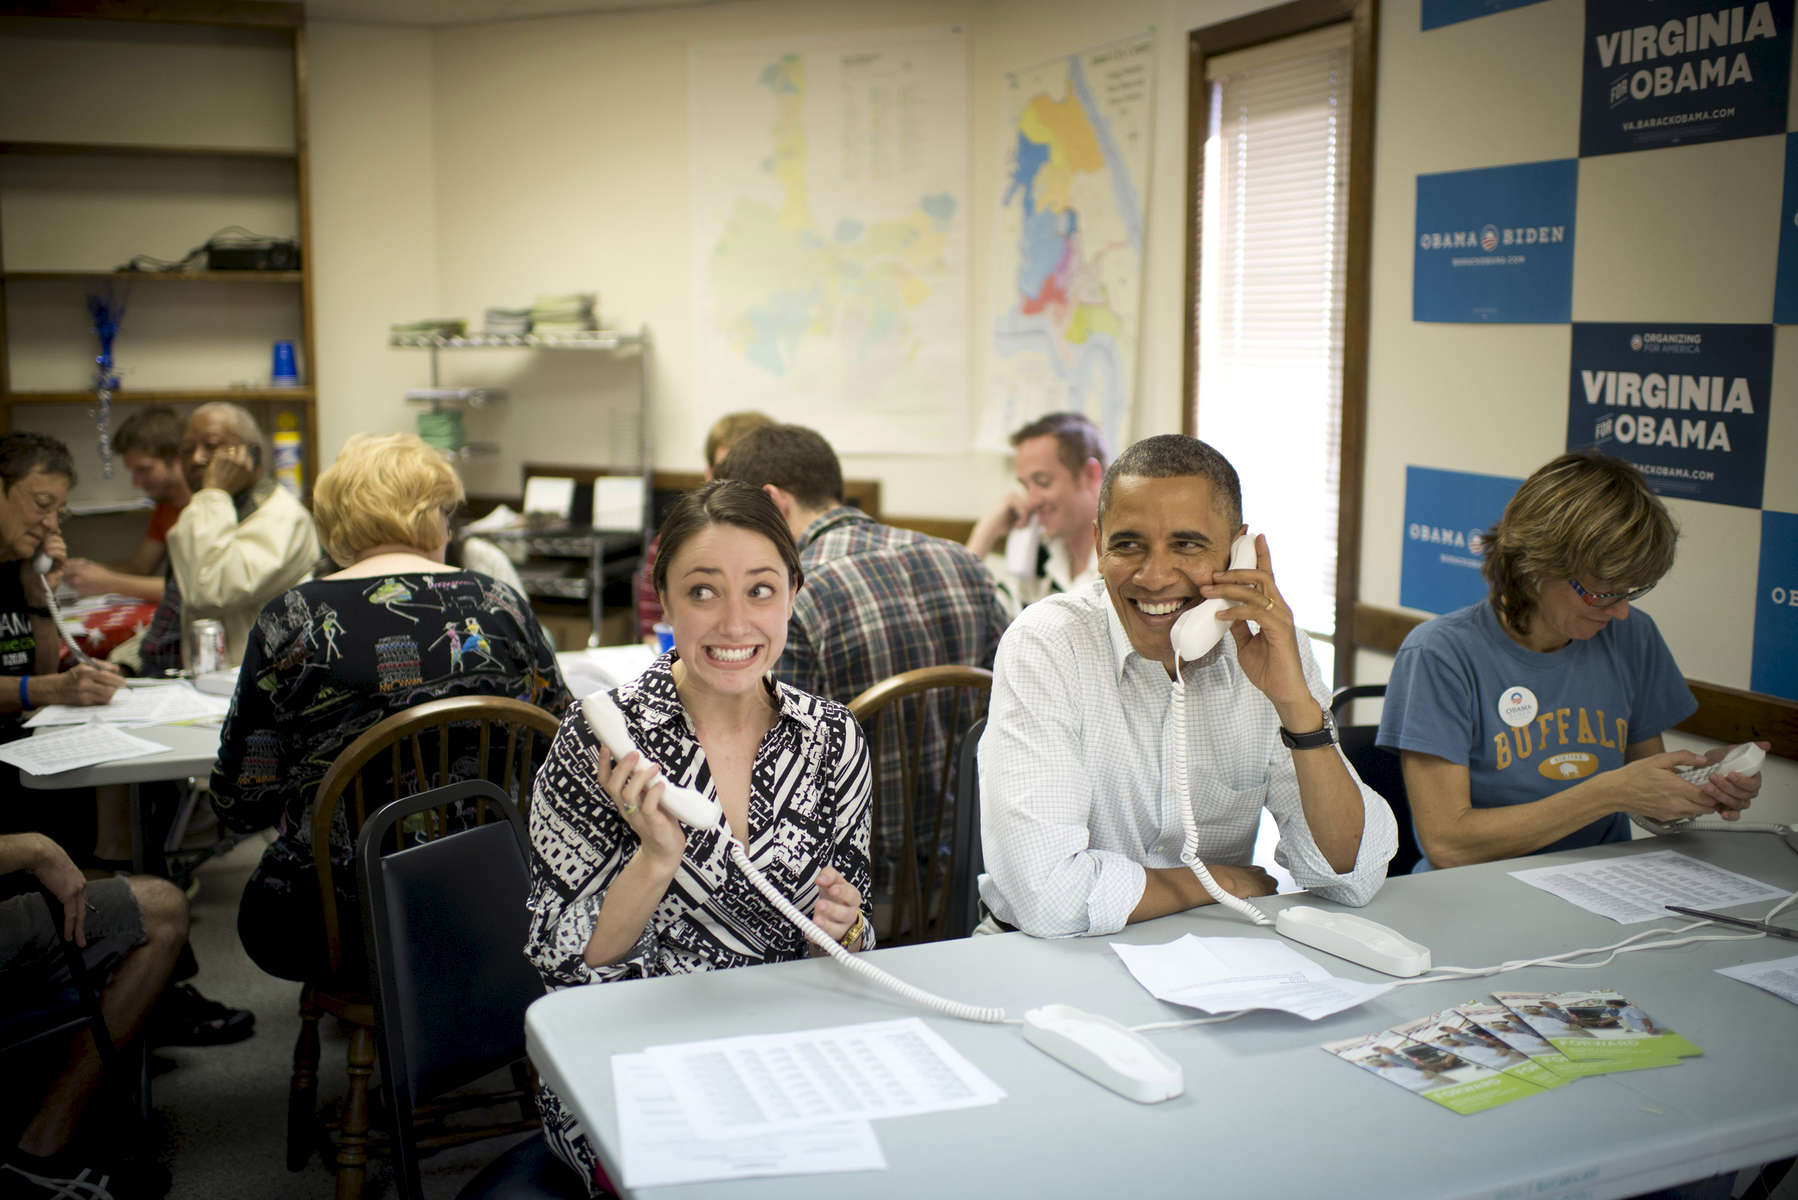 October 14, 2012 - Williamsburg, VA - A young woman reacts as President Barack Obama sits next to her to make phone calls at a campaign field office in Williamsburg, VA.  (Scout Tufankjian for Obama for America/Polaris)